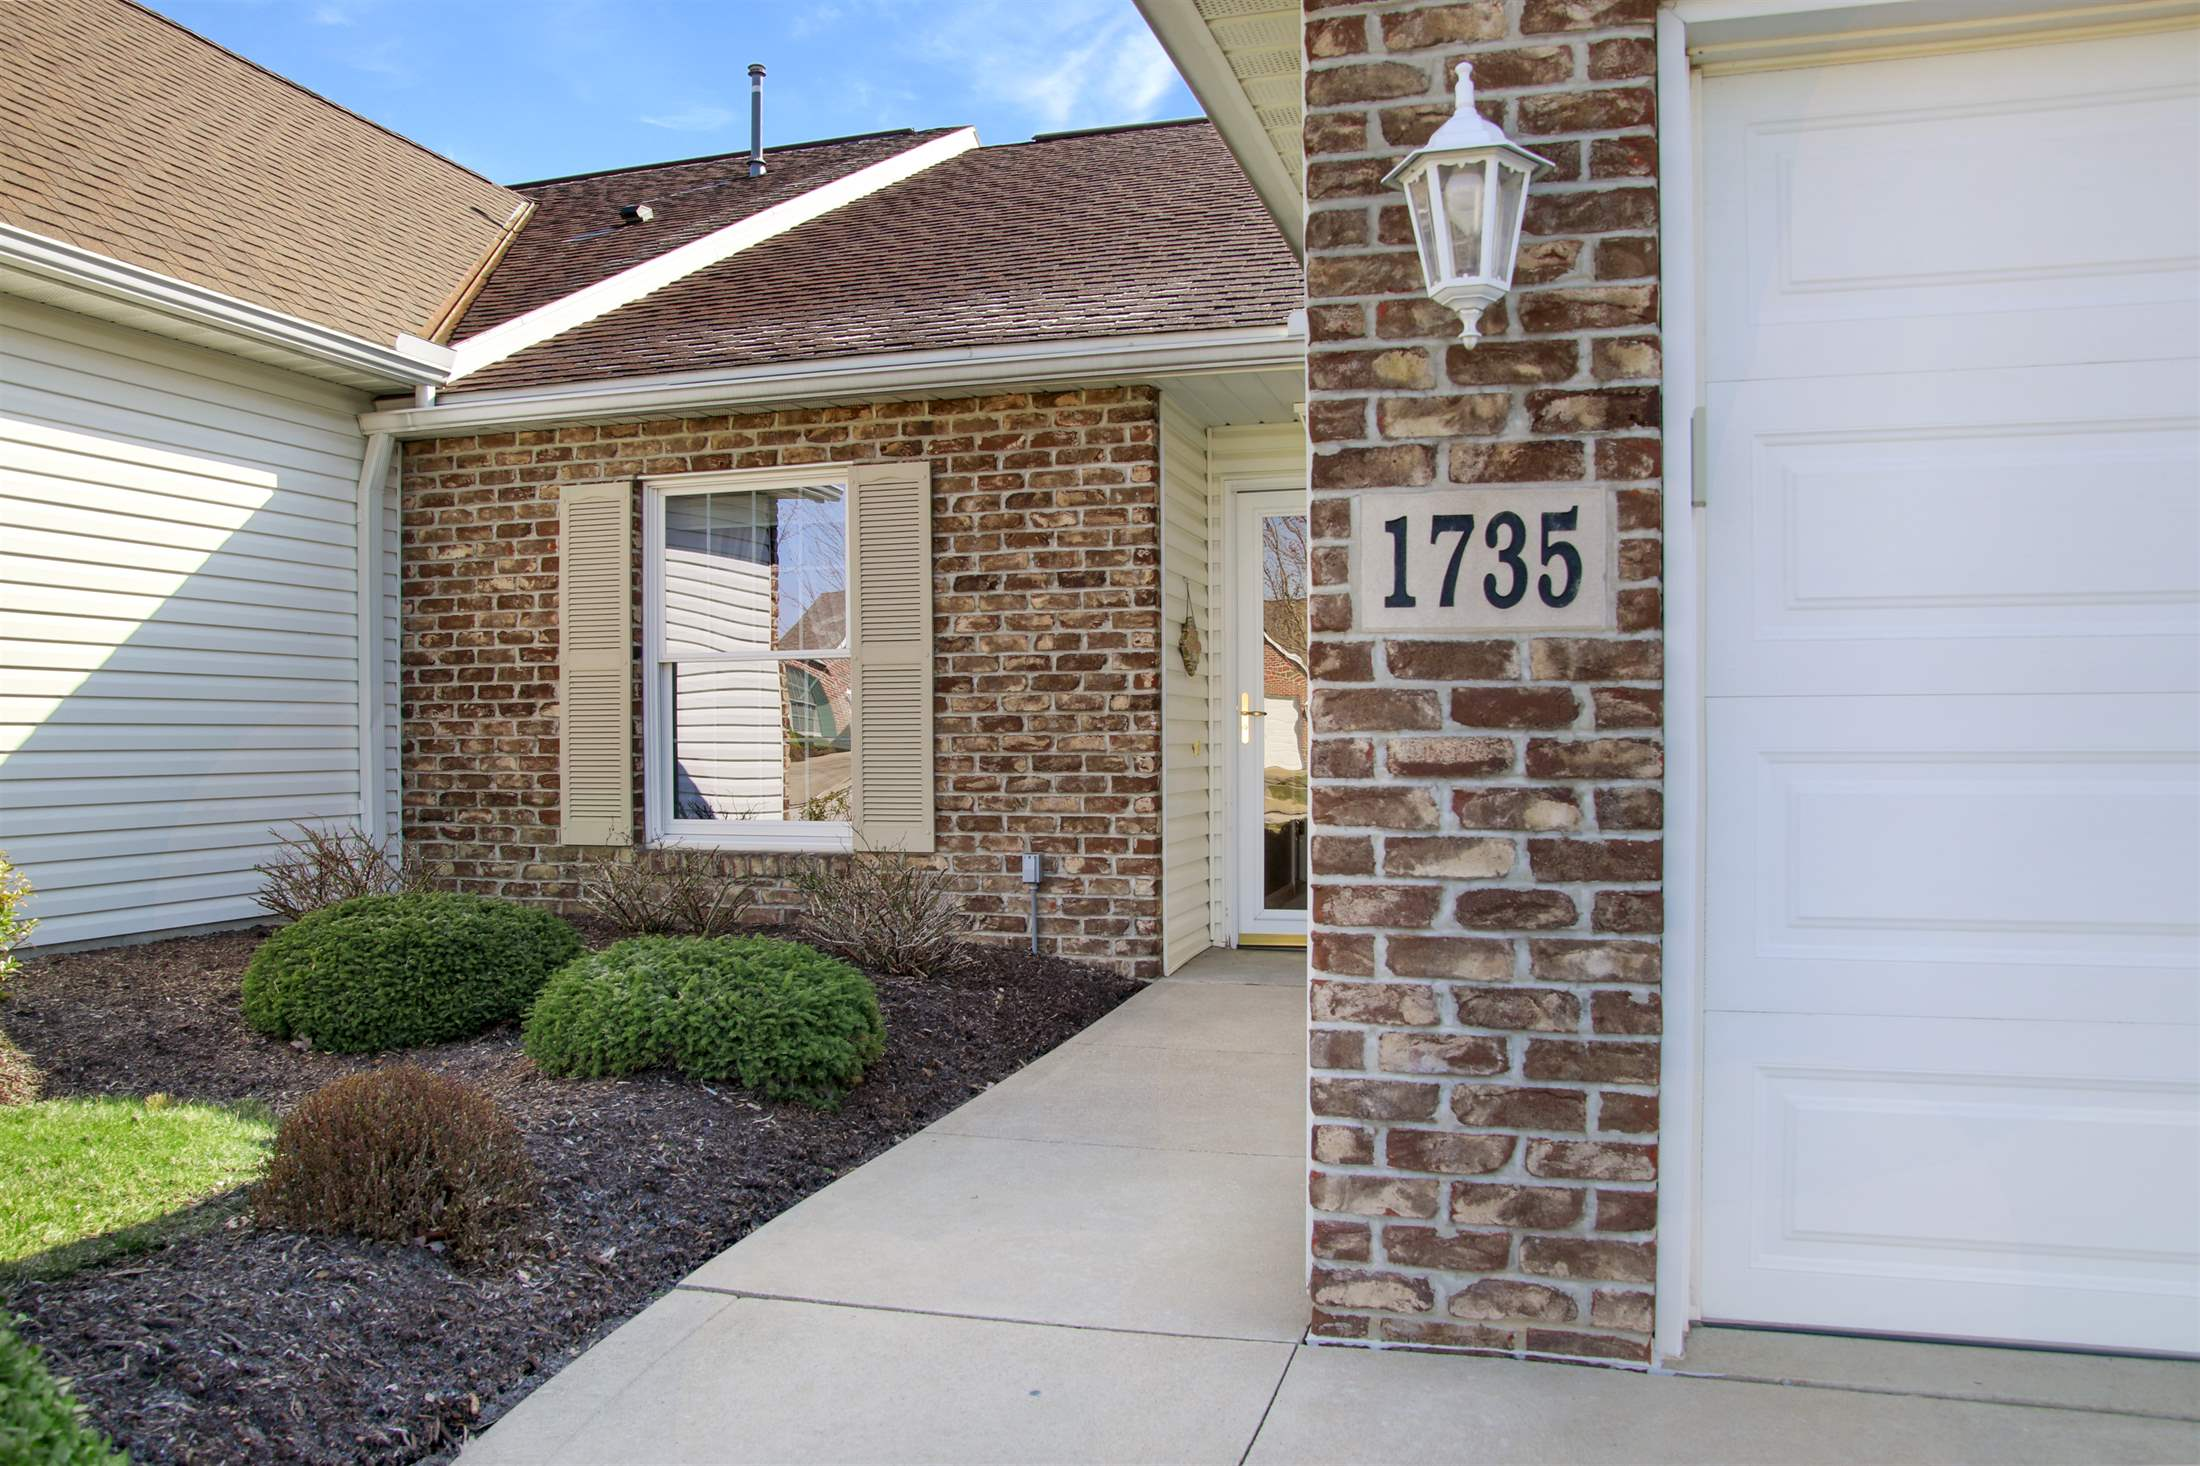 1735 Kingwood Ct, Ashland, OH 44805